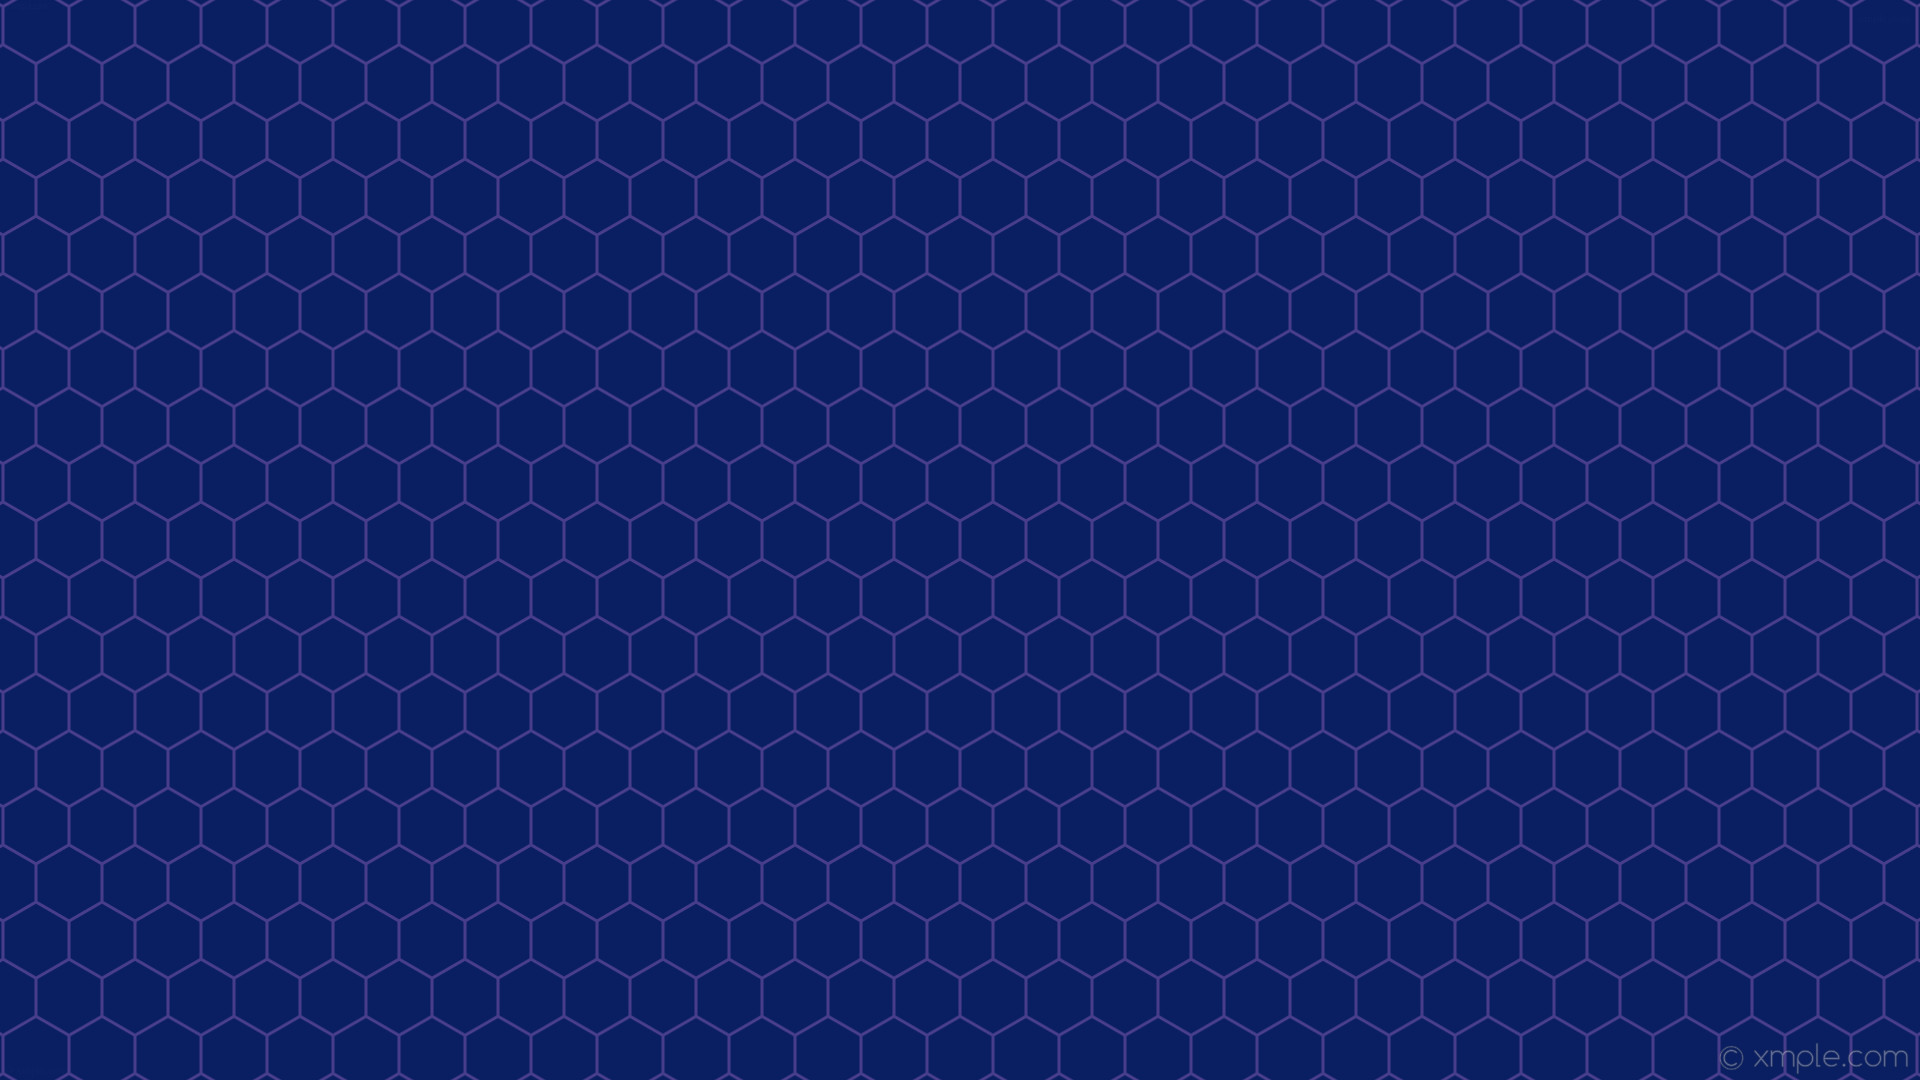 Res: 1920x1080, wallpaper hexagon beehive blue honeycomb purple dark slate blue #0a1f61  #483d8b 0° 3px